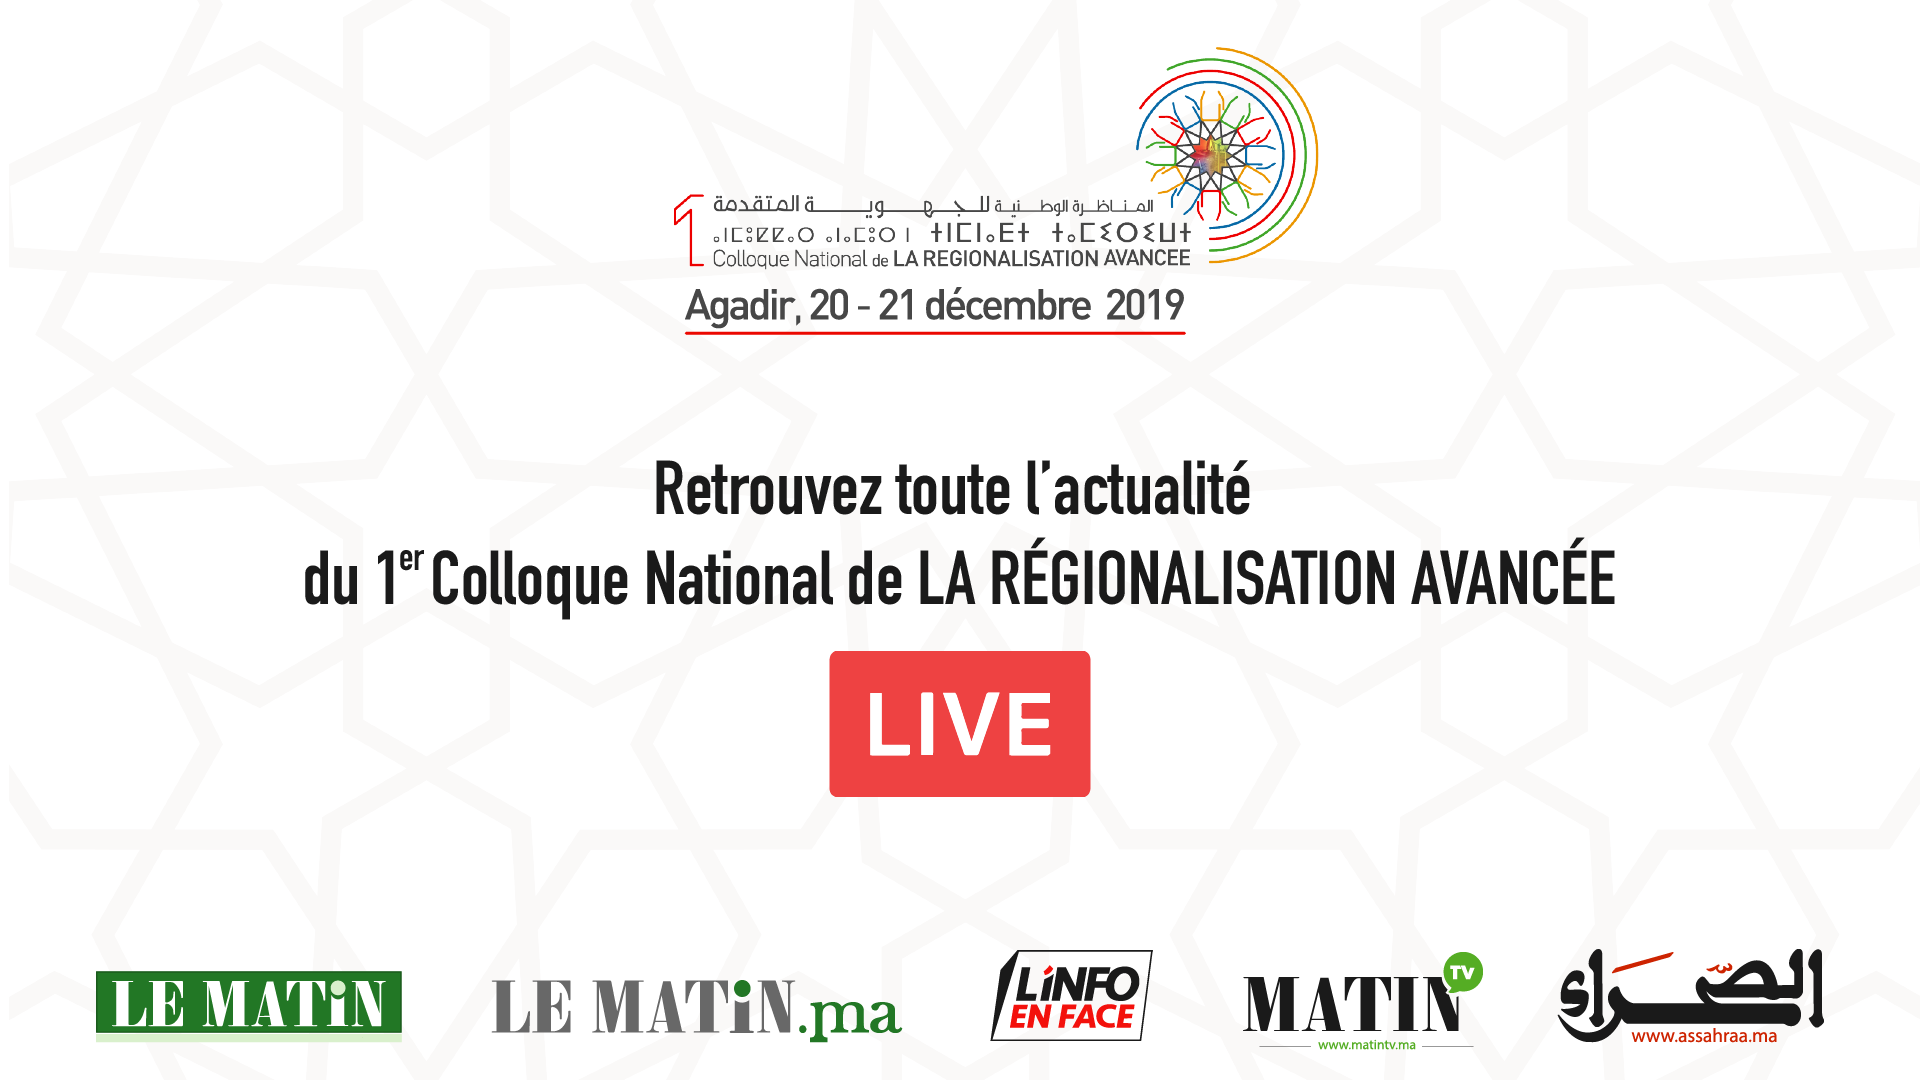 Live : Le Matin en direct du Colloque nationale de la régionalisation avancée